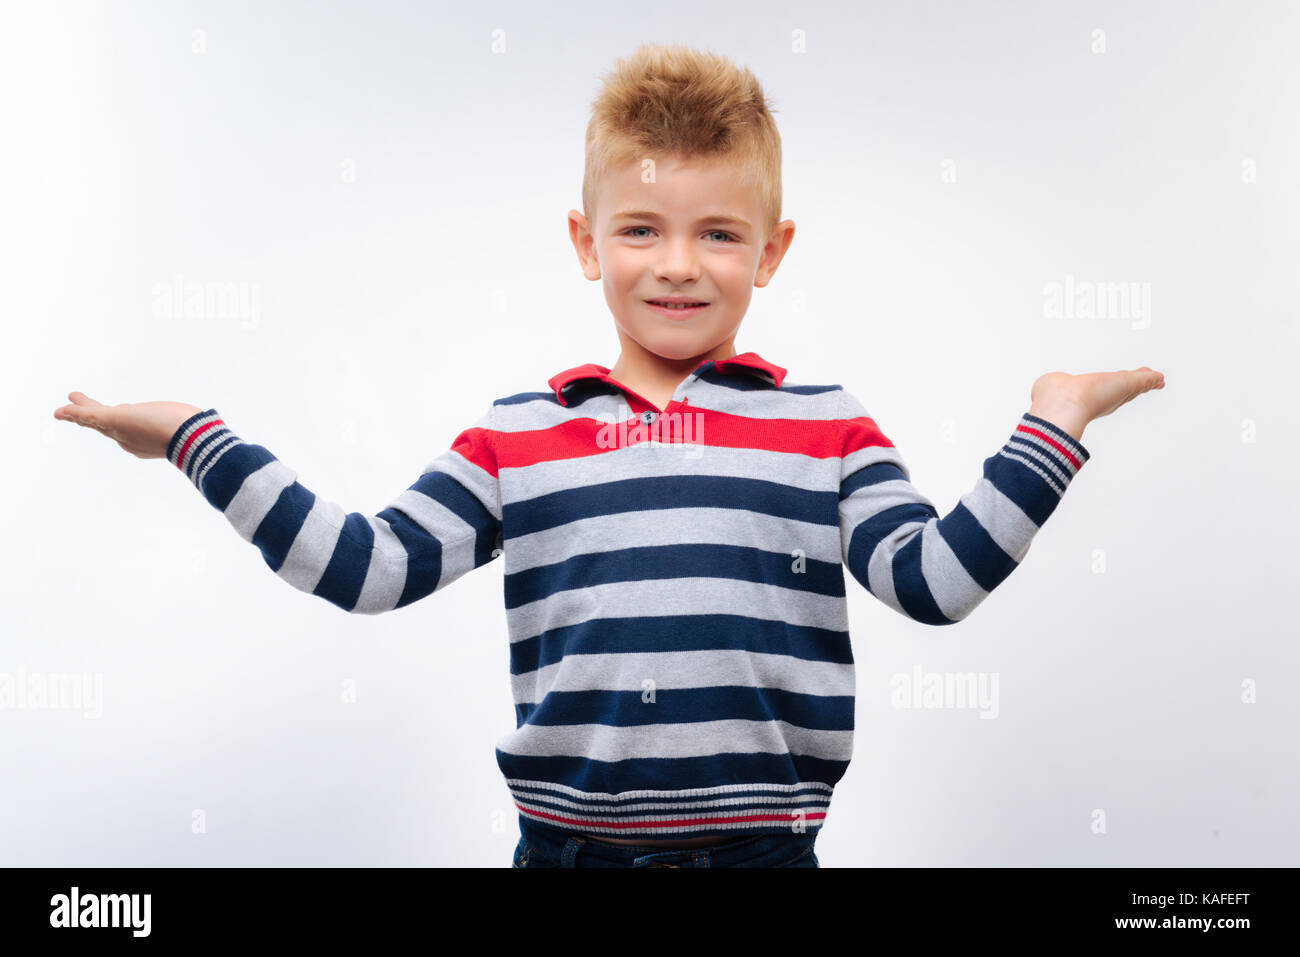 Smiling fair-haired boy spreading hands - Stock Image